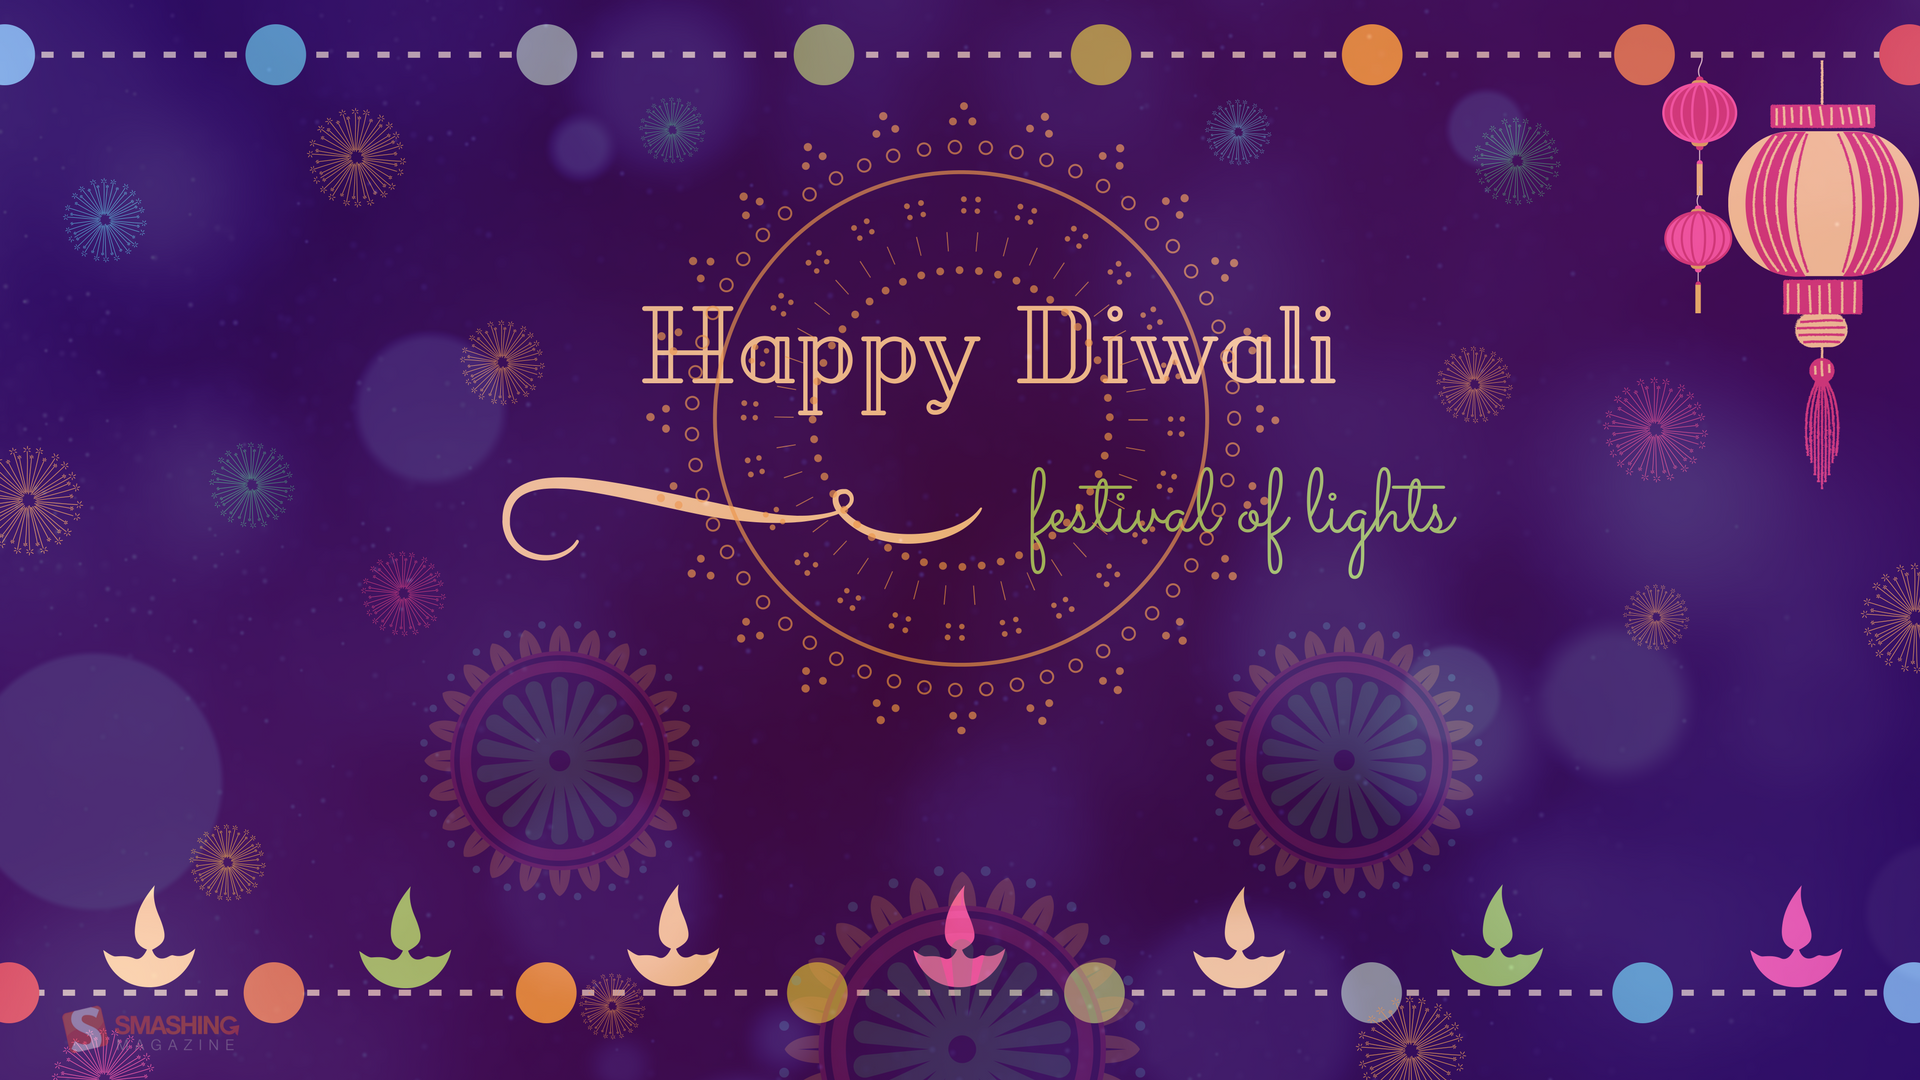 festival of lights diwali wallpaper hd for desktop